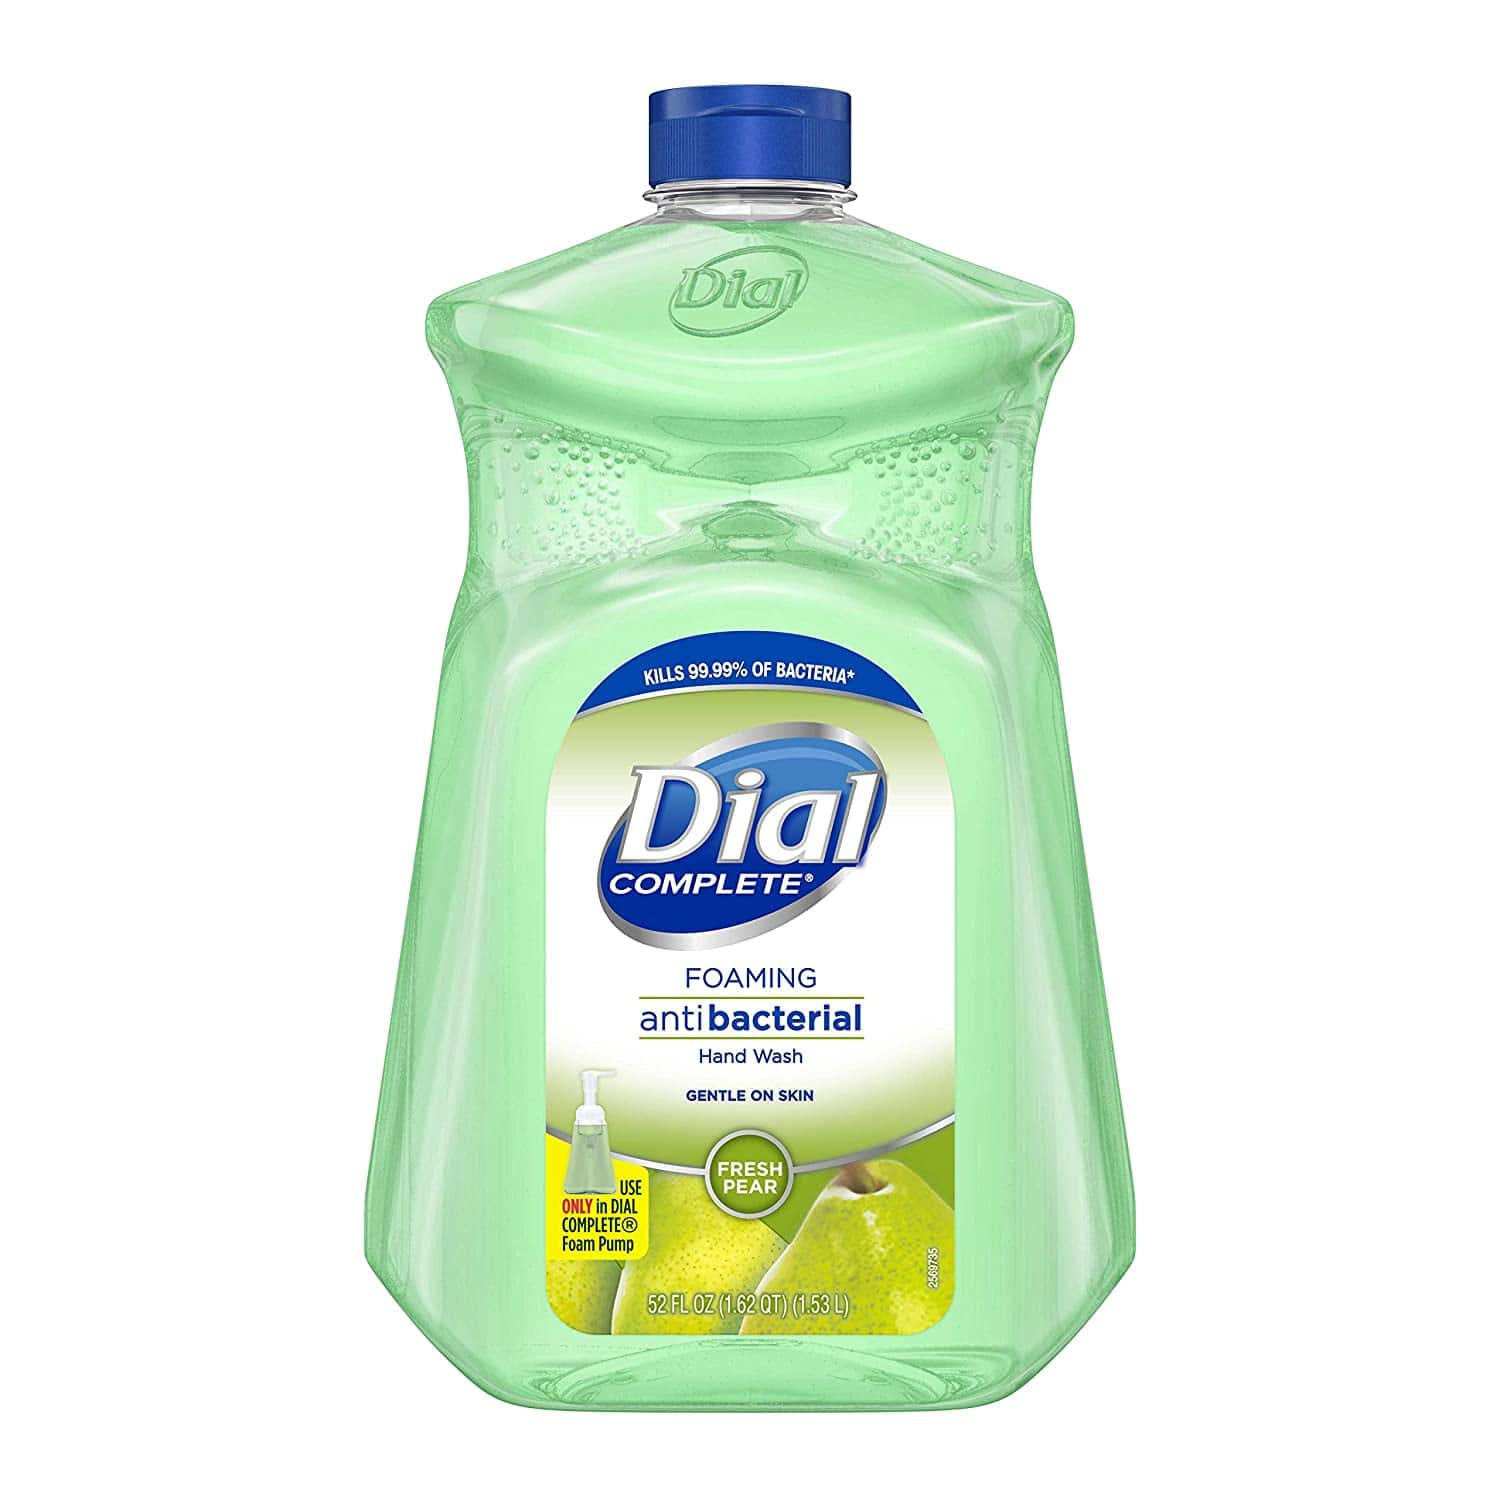 52 Ounce Dial Complete Antibacterial Foaming Hand Soap, Fresh Pear. $6.49 @ Amazon